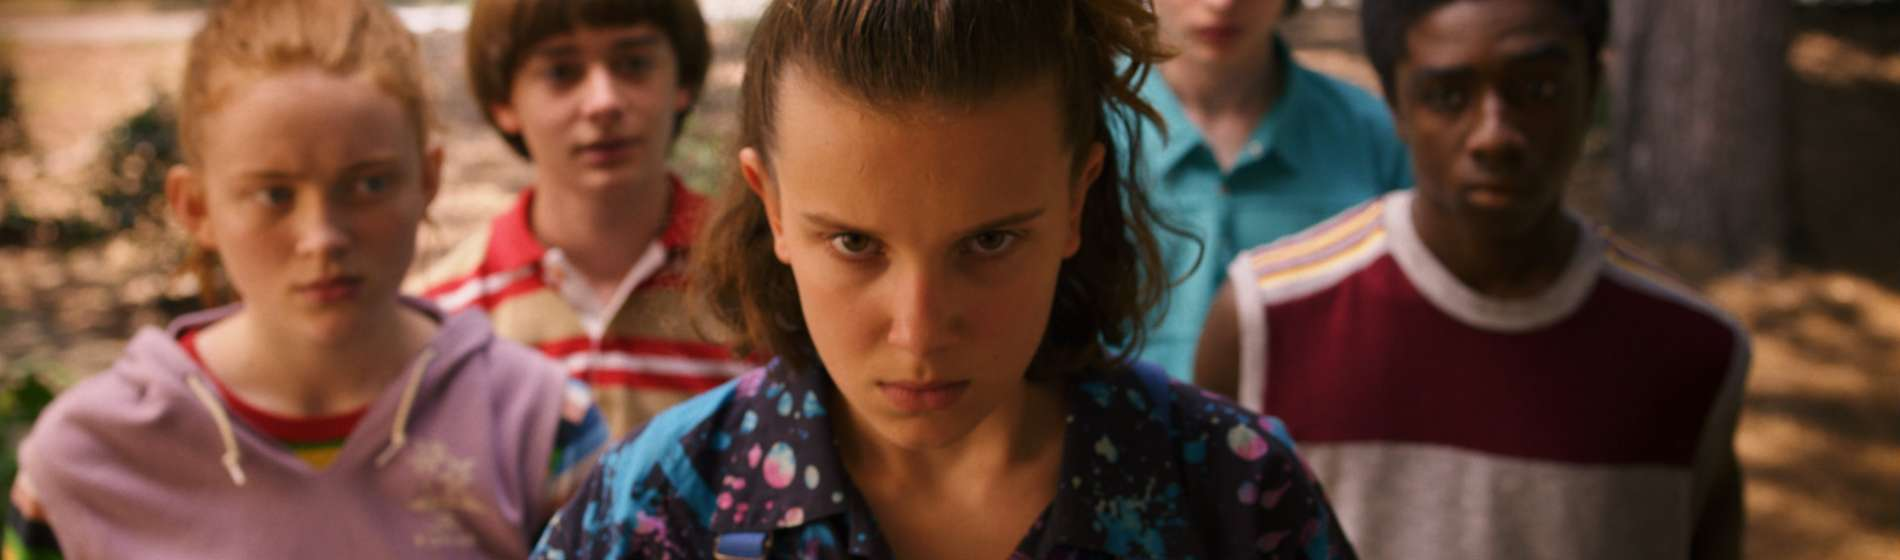 Stranger-things-3-Production-Still-8